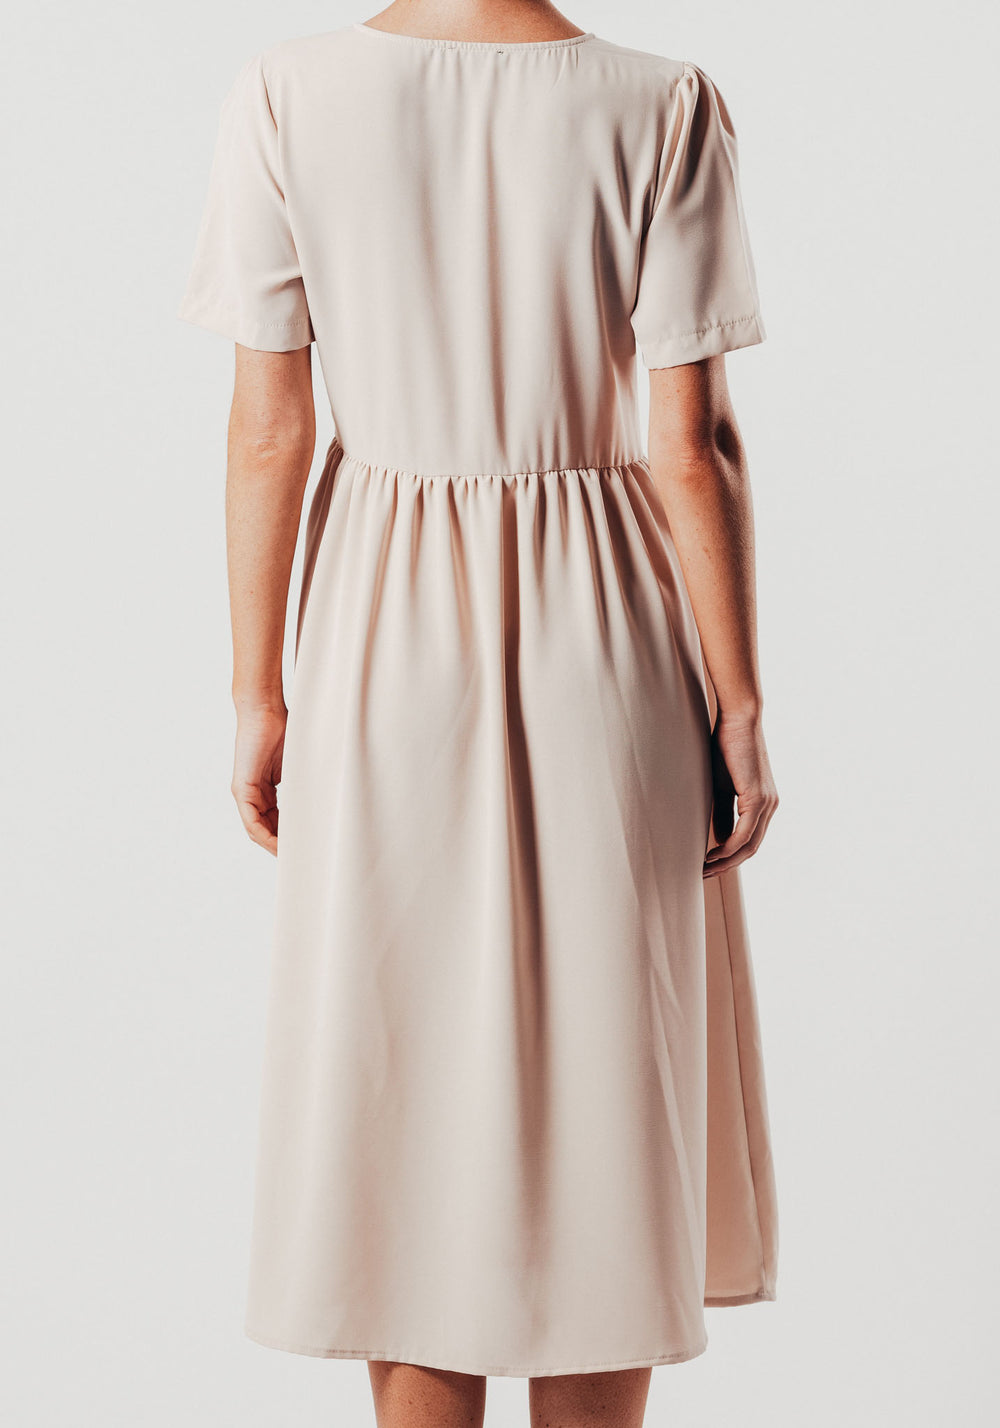 Cream Button Up Midi Dress